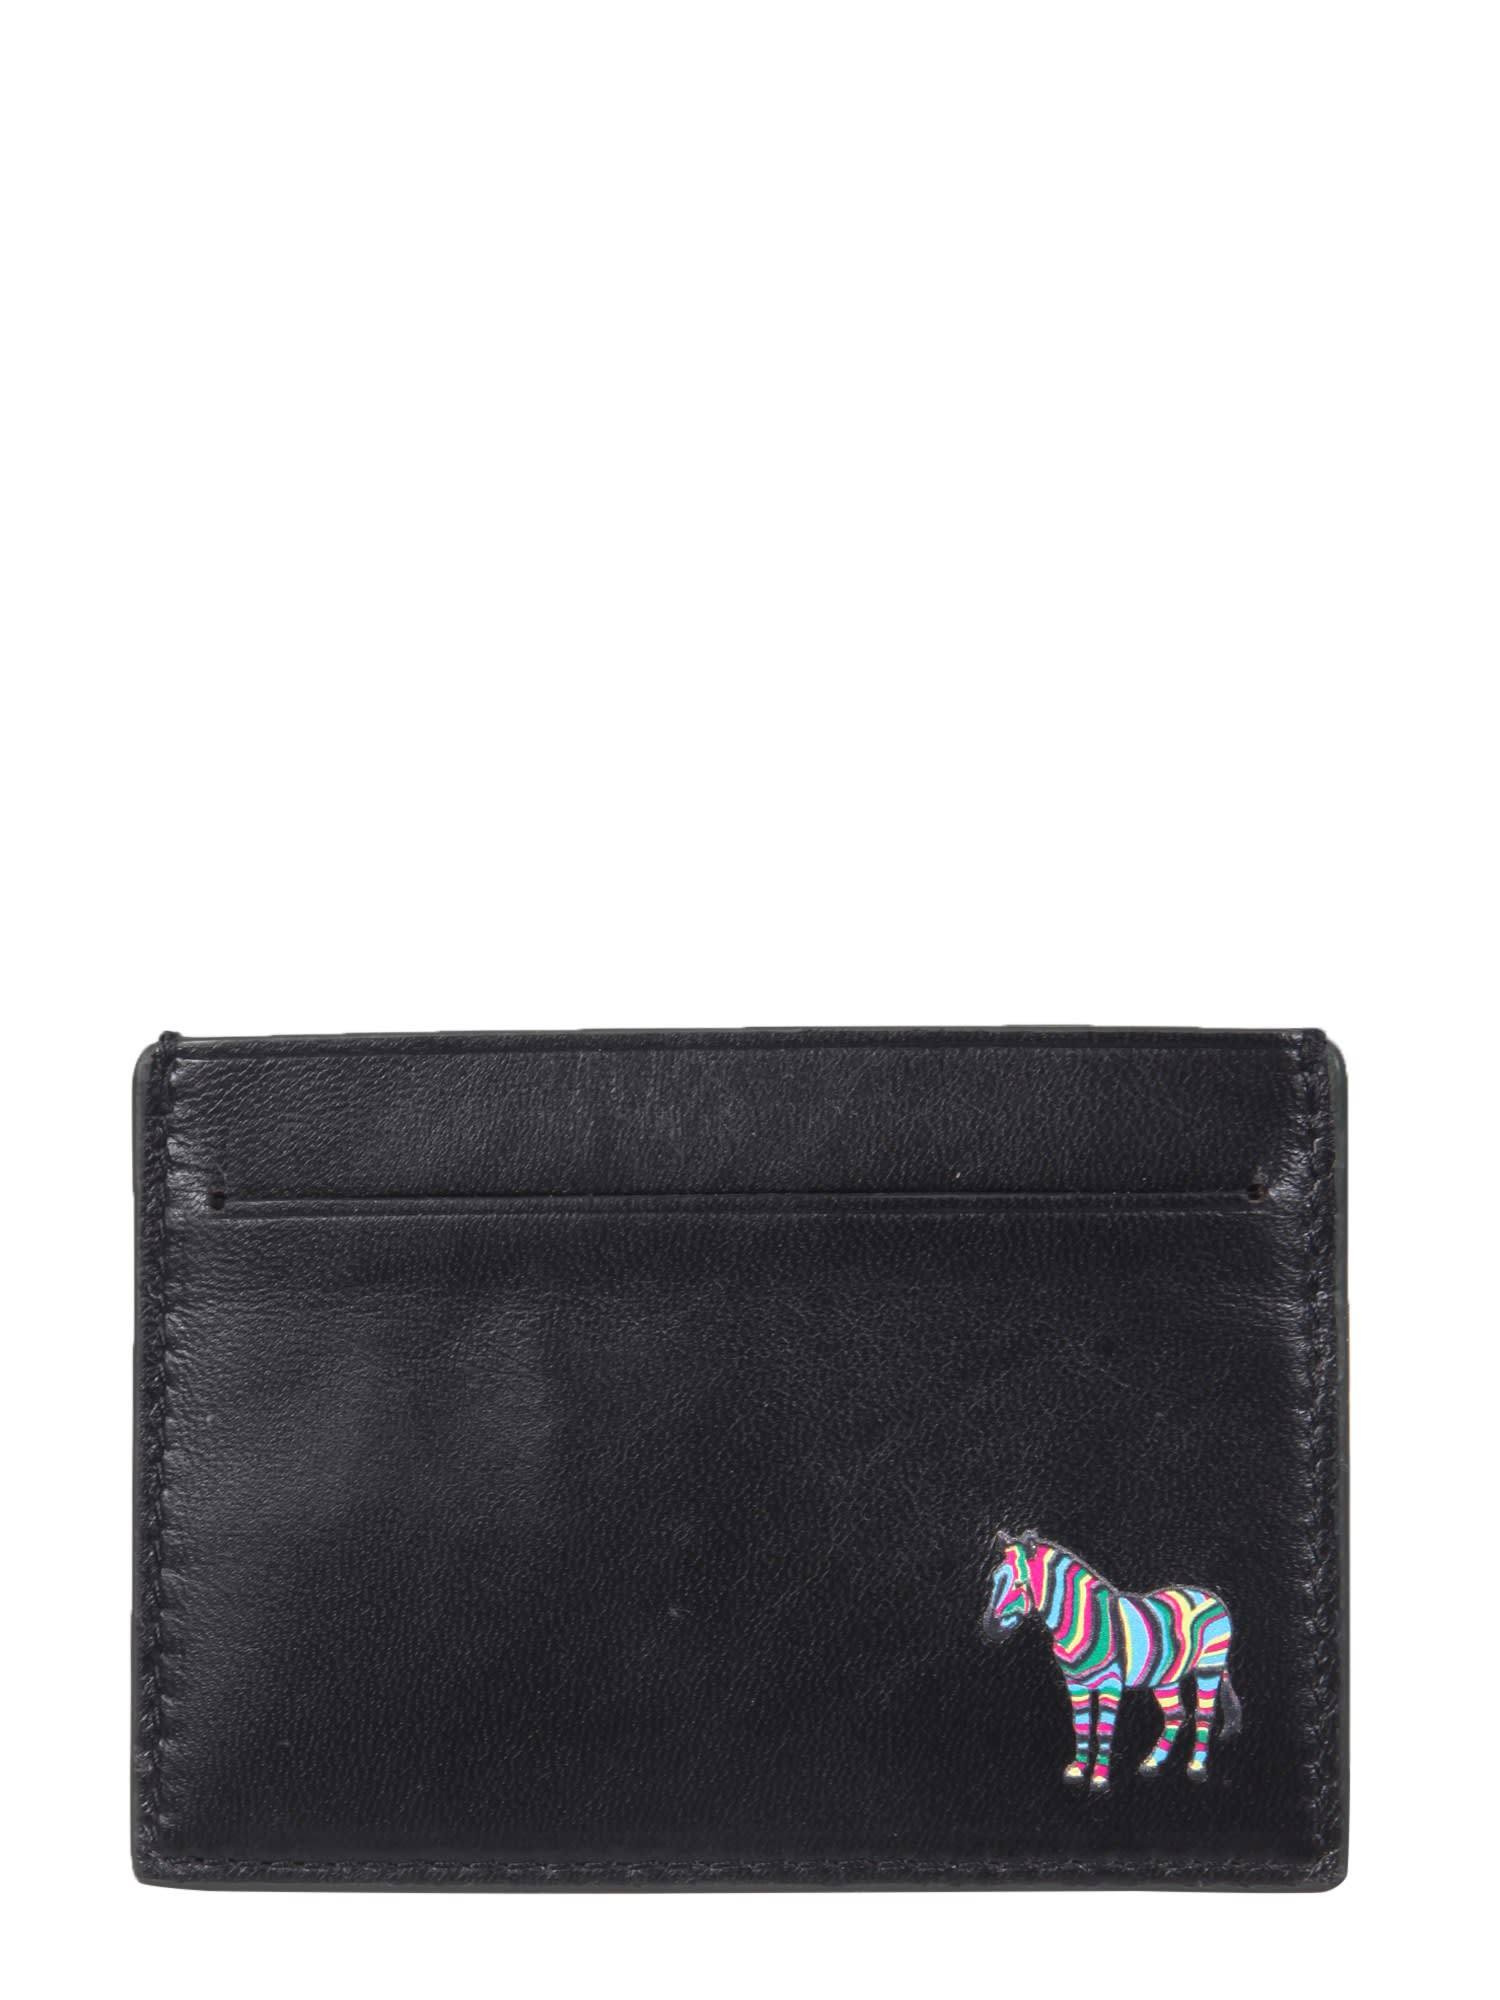 PS by Paul Smith Card Holder With Zebra Application